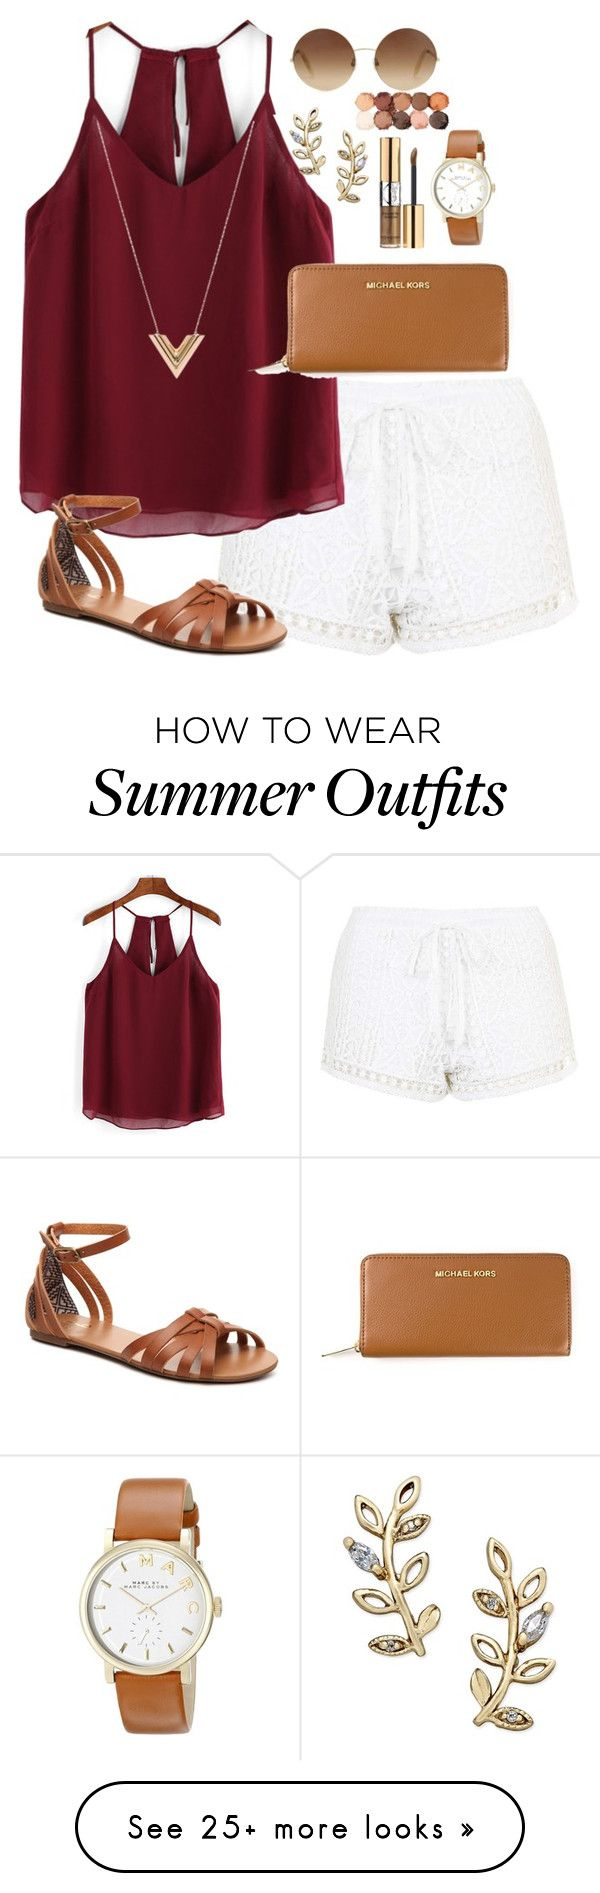 Summer Outfit by galaxygirls66 on Polyvore featuring Topshop, Louis Vuitton, MICHAEL Michael Kors, Mix No. 6, Victoria Beckham, Marc by Marc Jacobs, Giani Bernini, Yves Saint Laurent and NYX